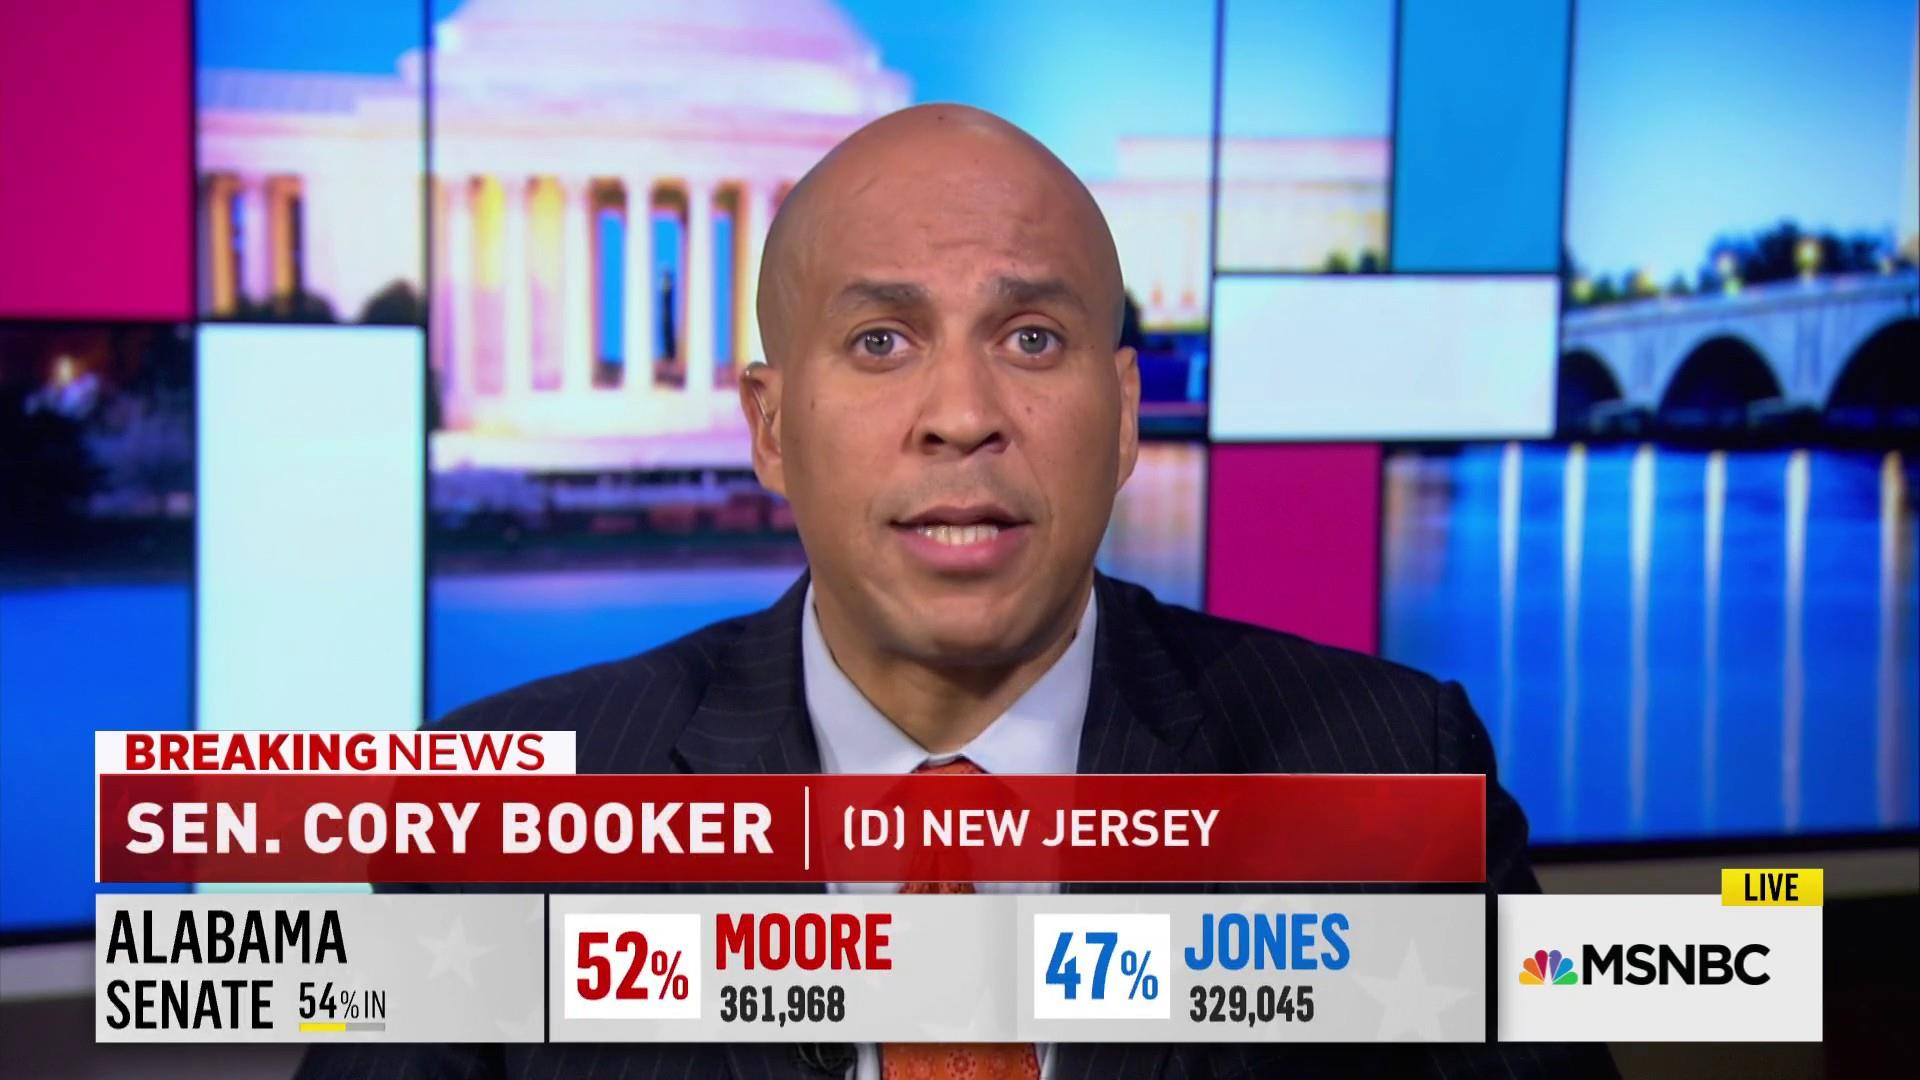 Booker: We cannot allow Roy Moore to serve